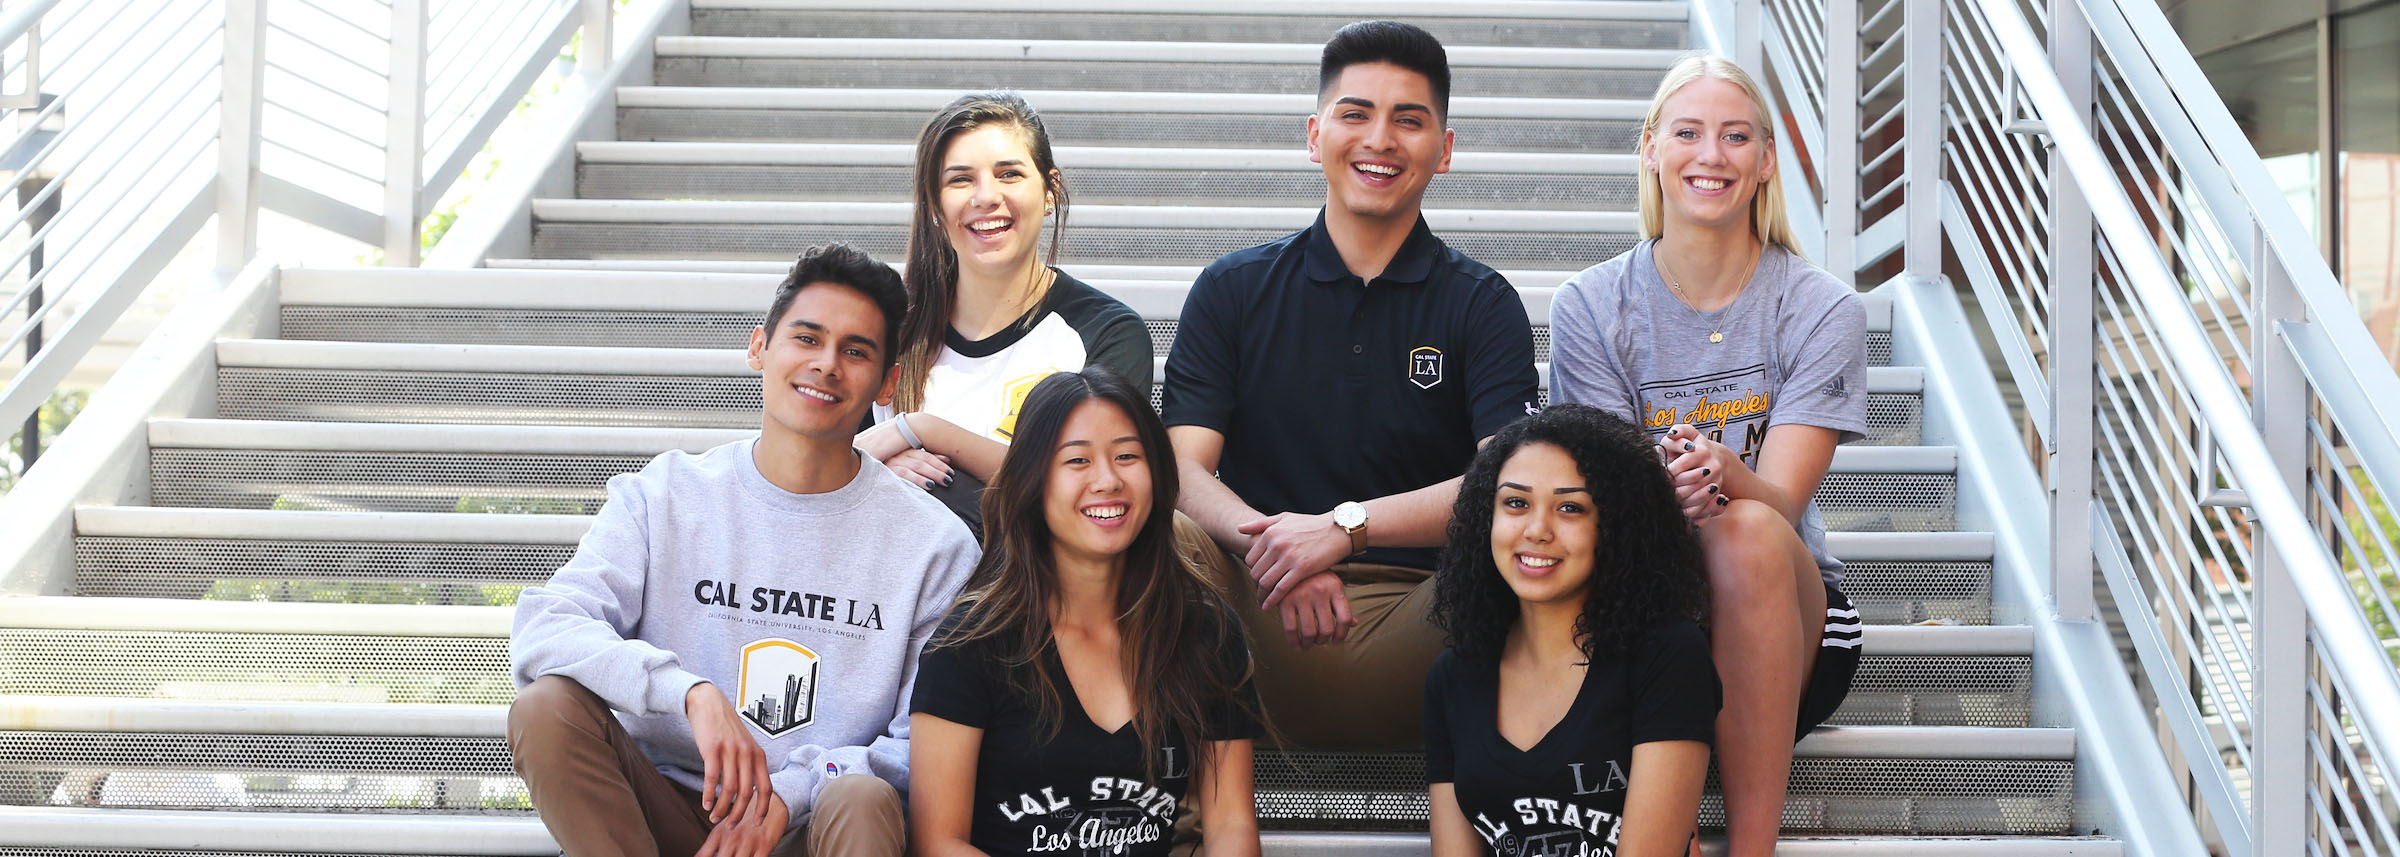 photo of Cal State LA students